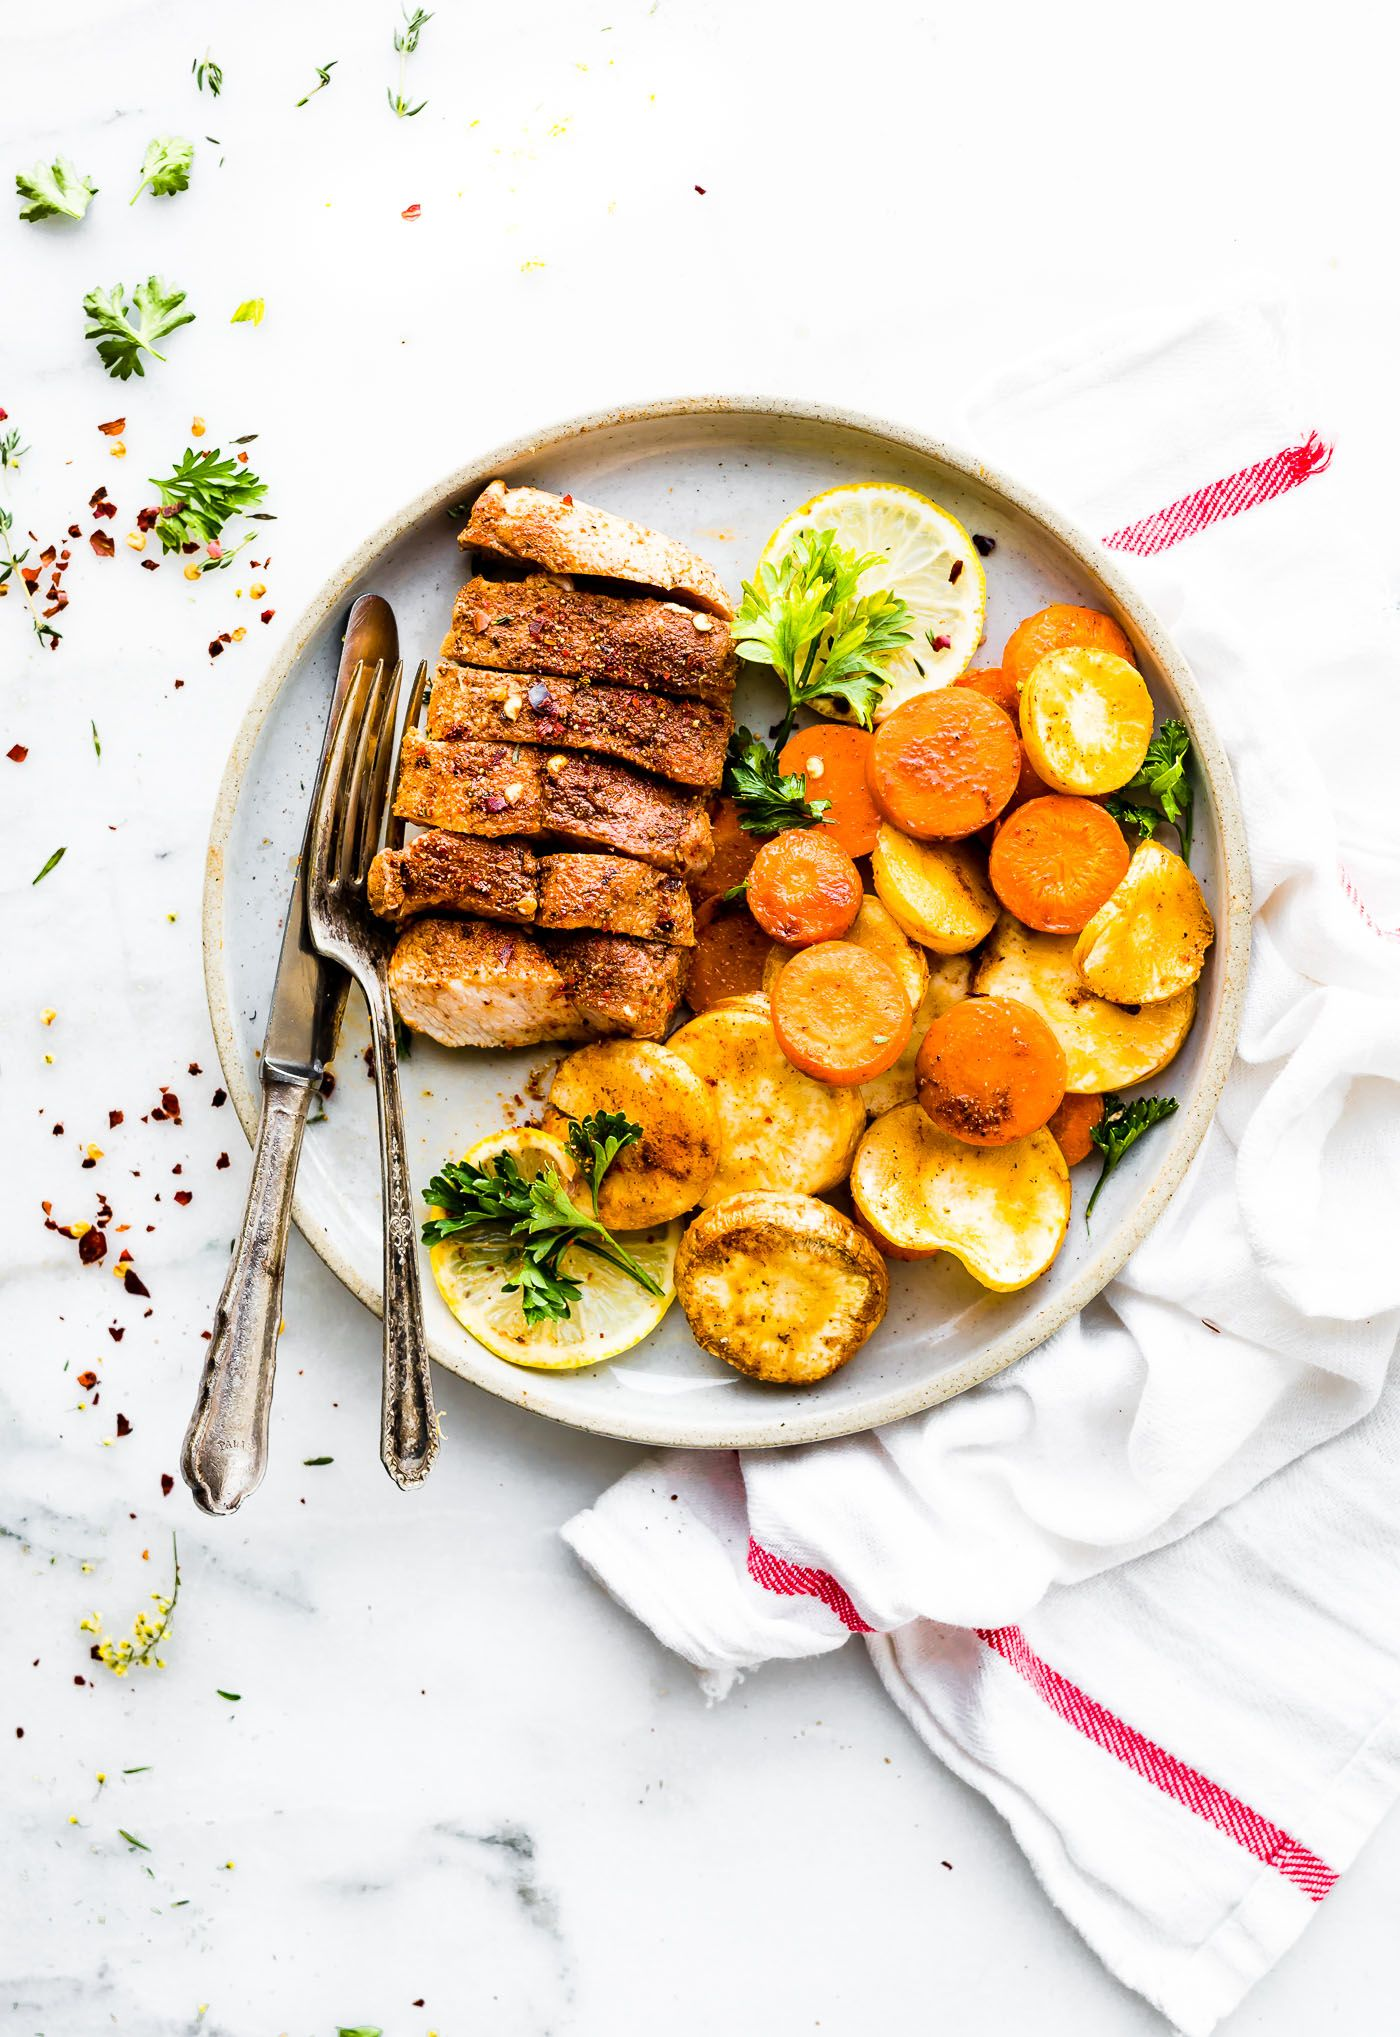 Cinnamon chipotle baked pork chops with parsnips and